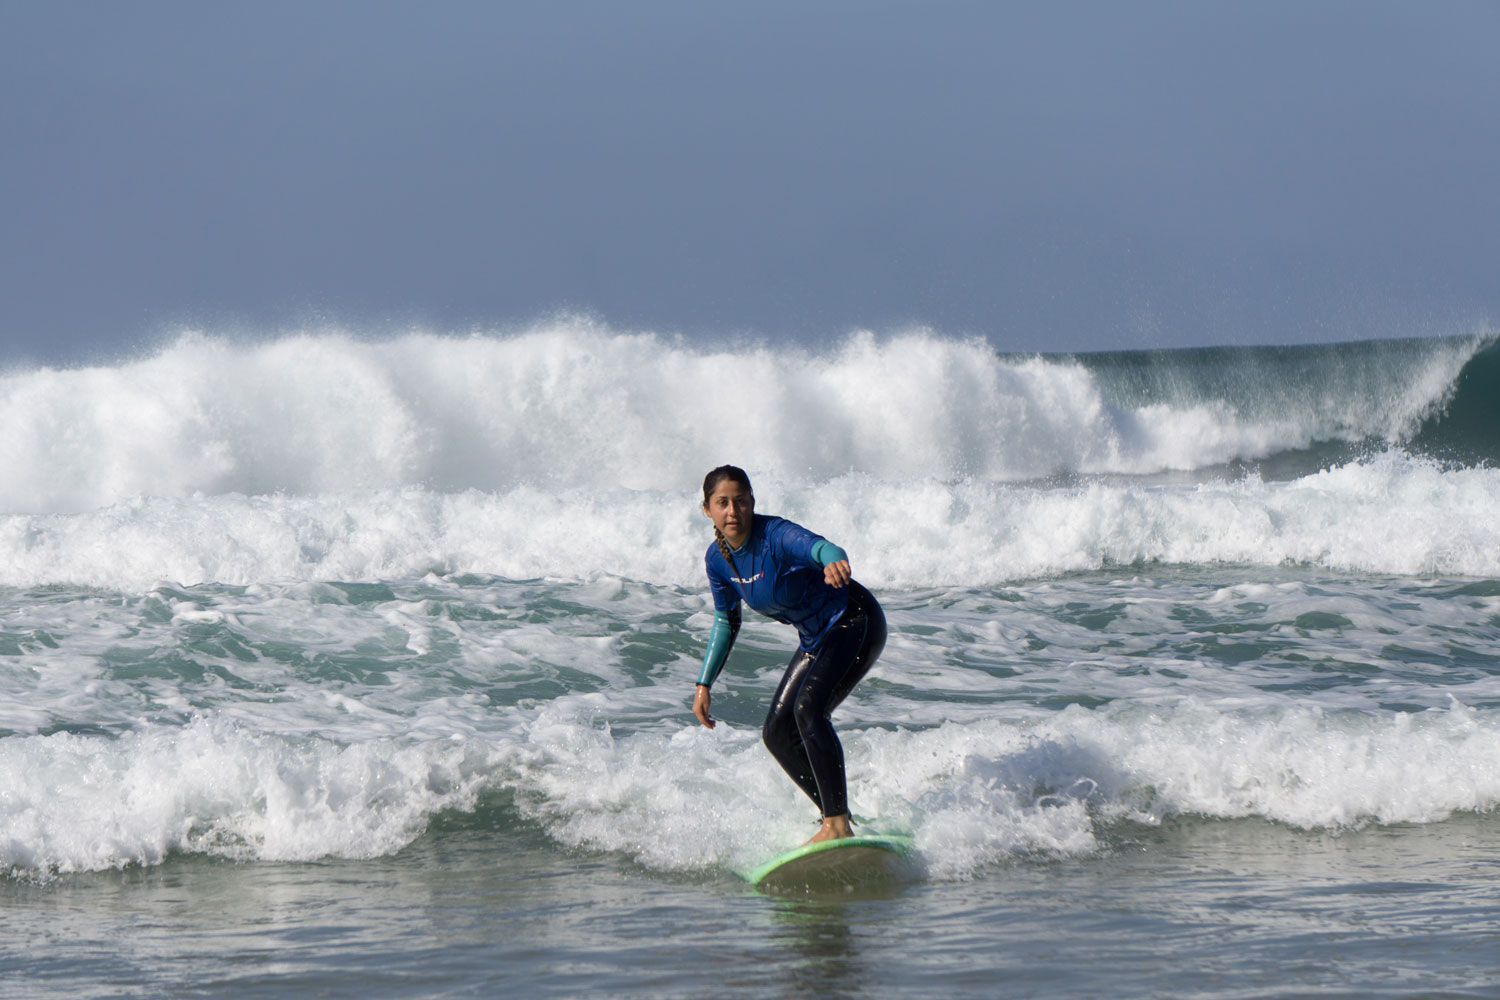 Surf lessons, learn try surfing in Lagos Algarve South Portugal